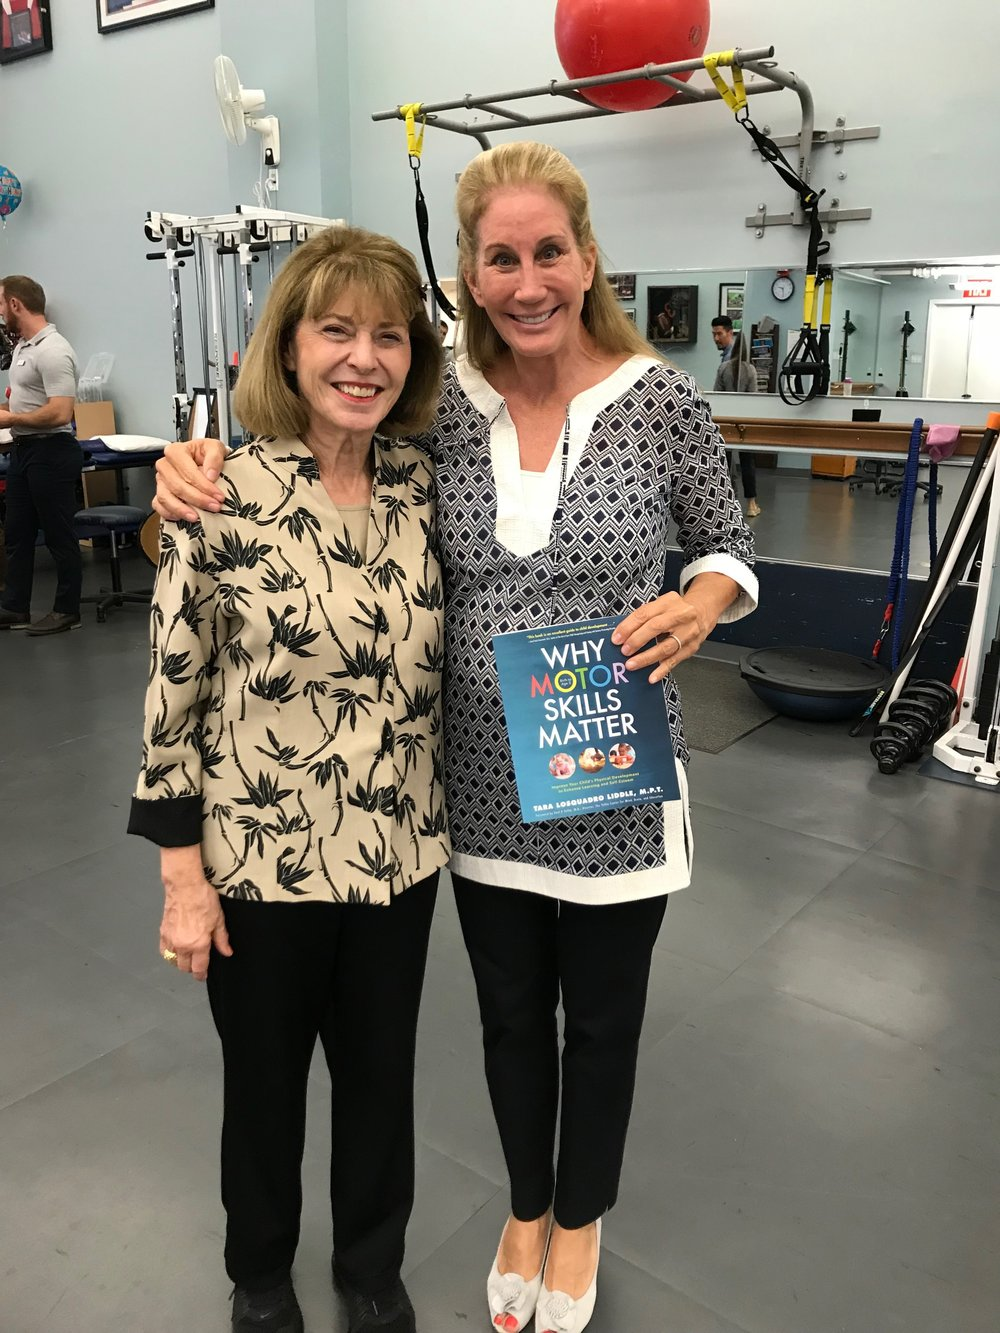 Tara with Dr. Marilyn Moffat, PT, DPT, PHD, GCS